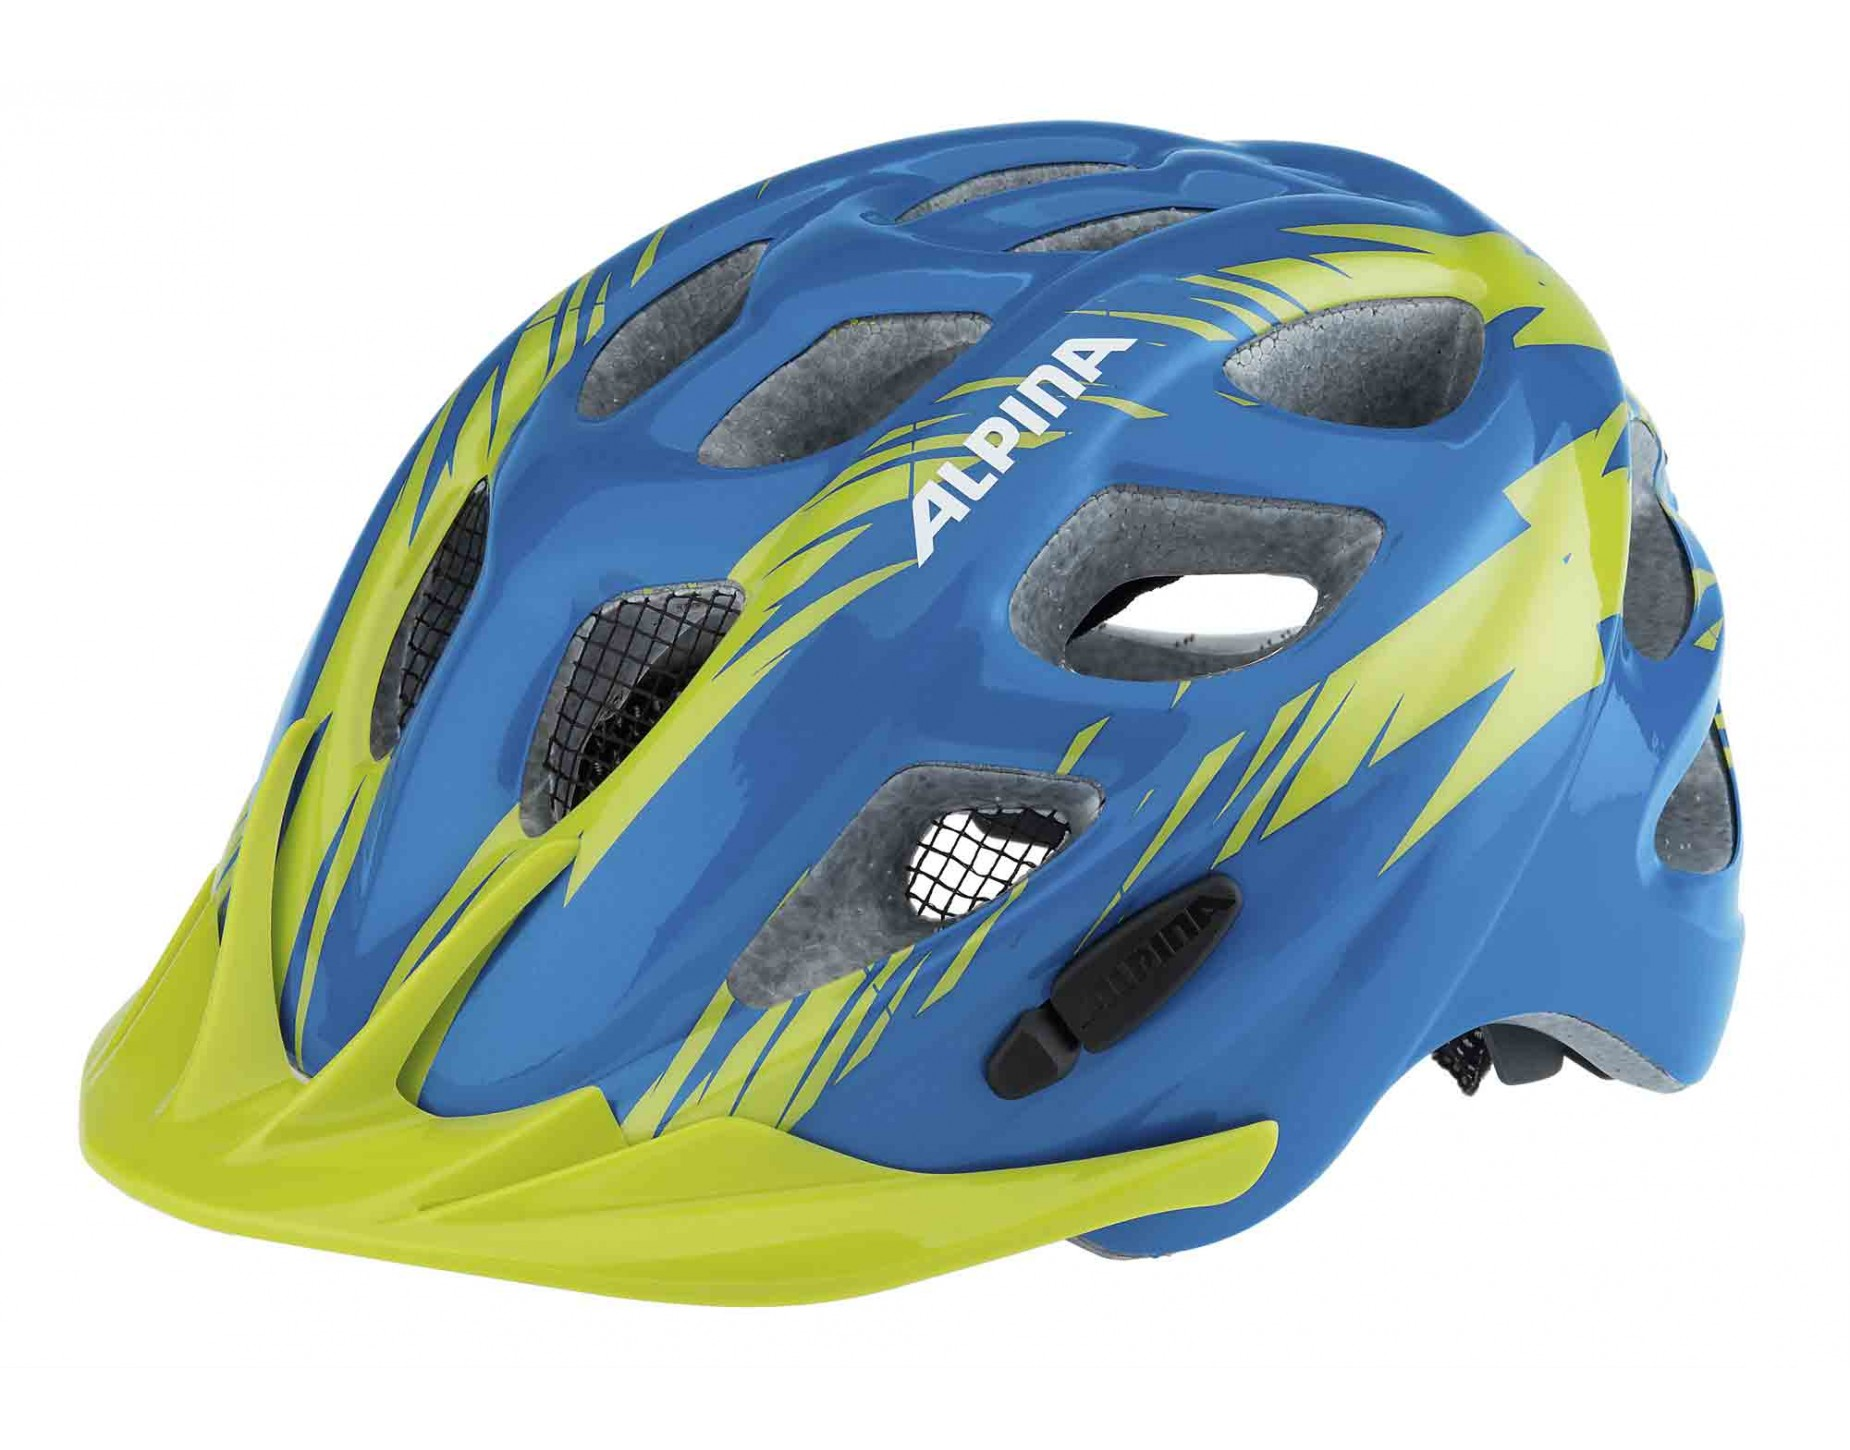 ALPINA ROCKY helmet for kids blue green